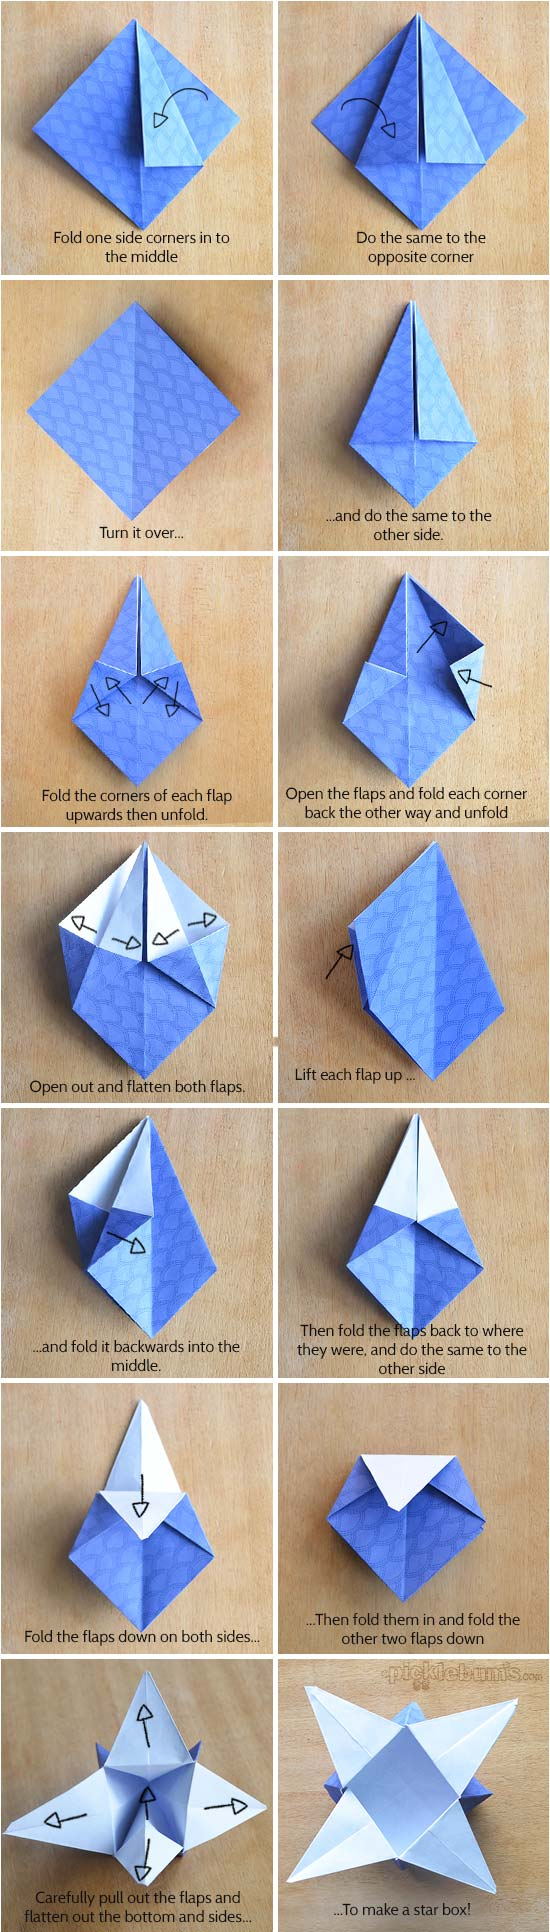 picture relating to Printable Oragami Paper called Origami Star Packing containers with Printable Origami Paper - Pickles